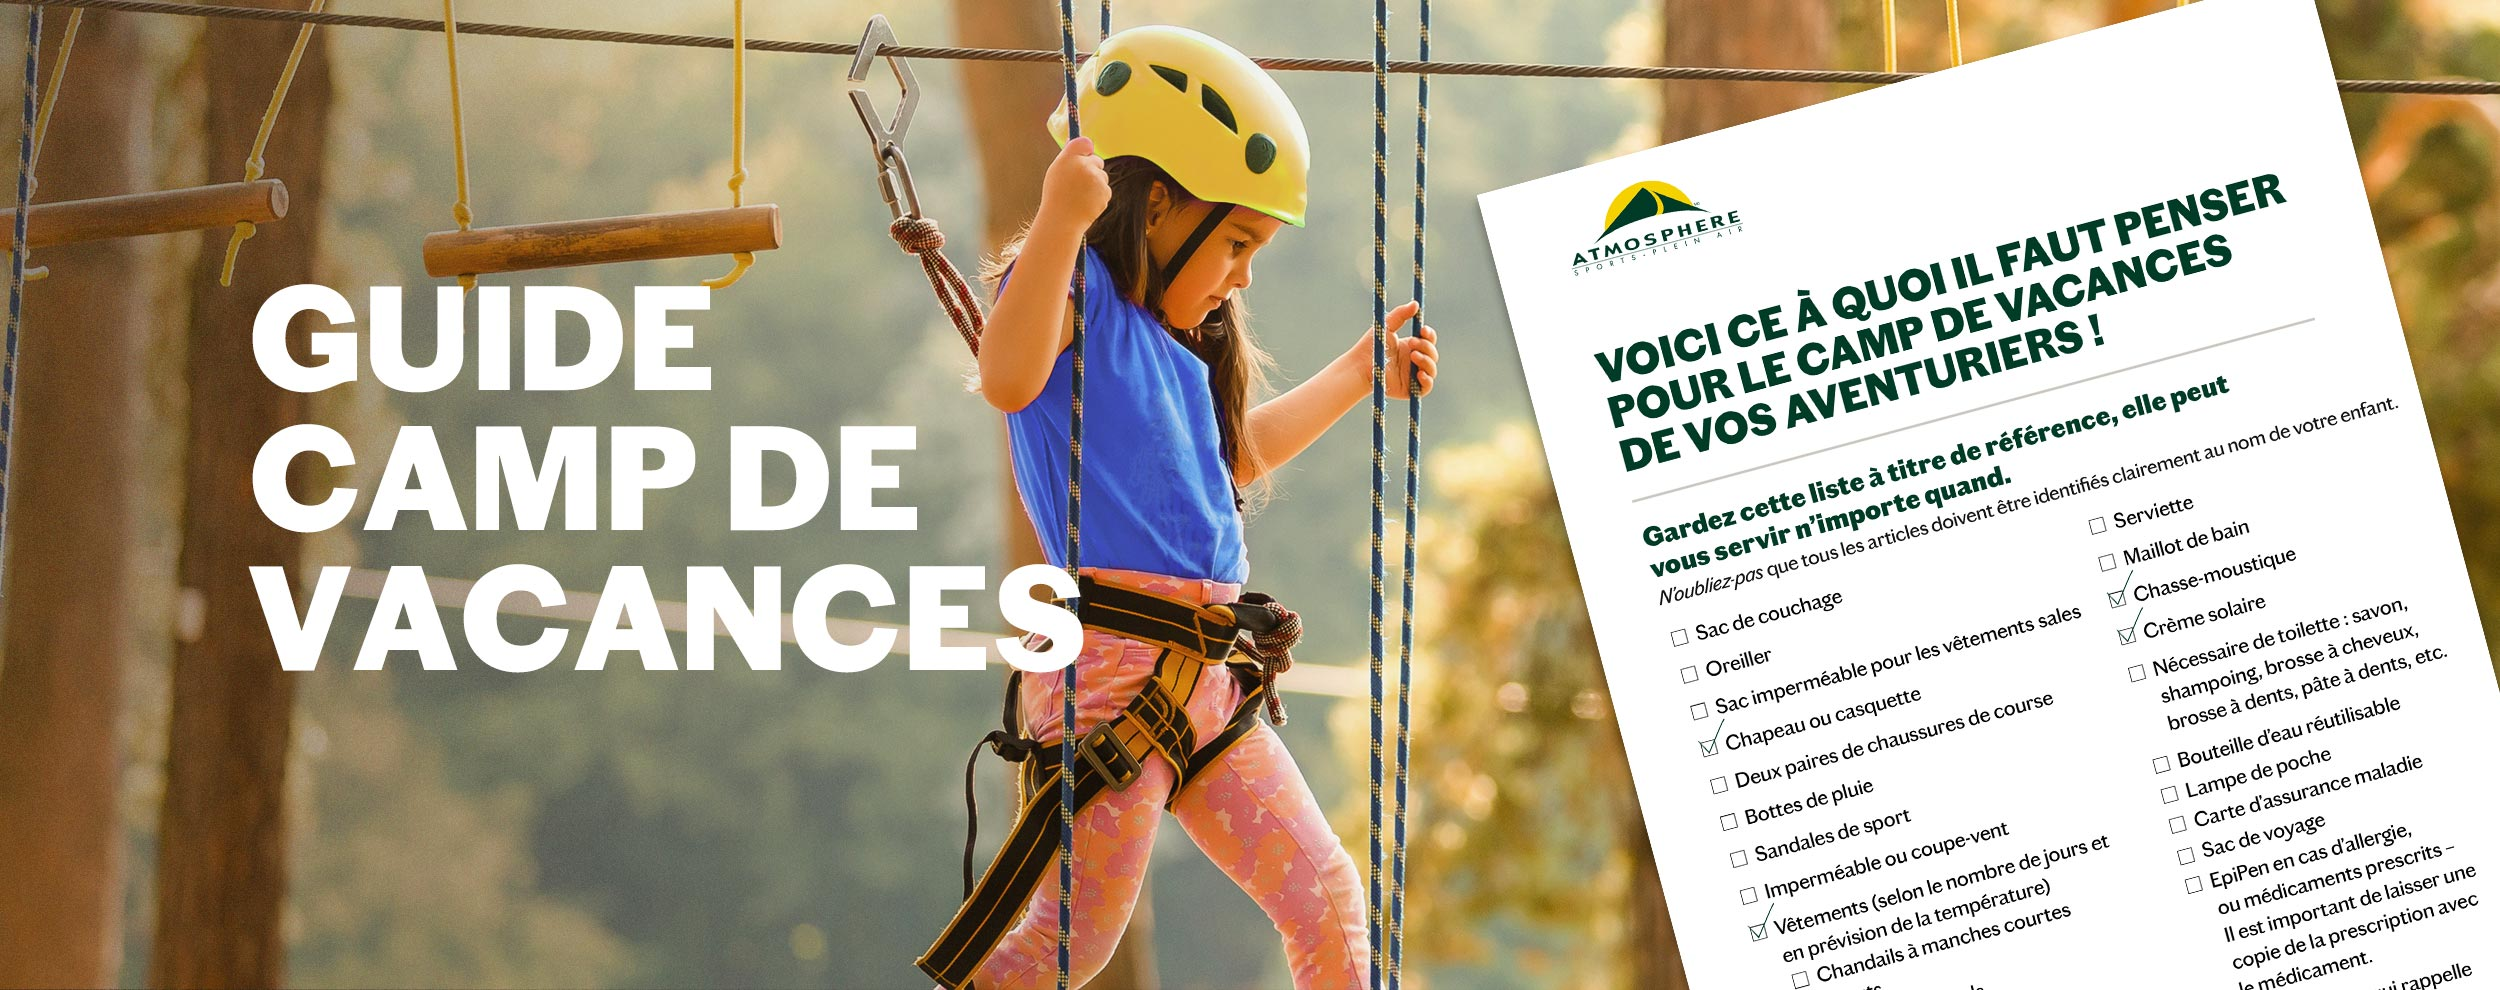 Guide Camp de vacances